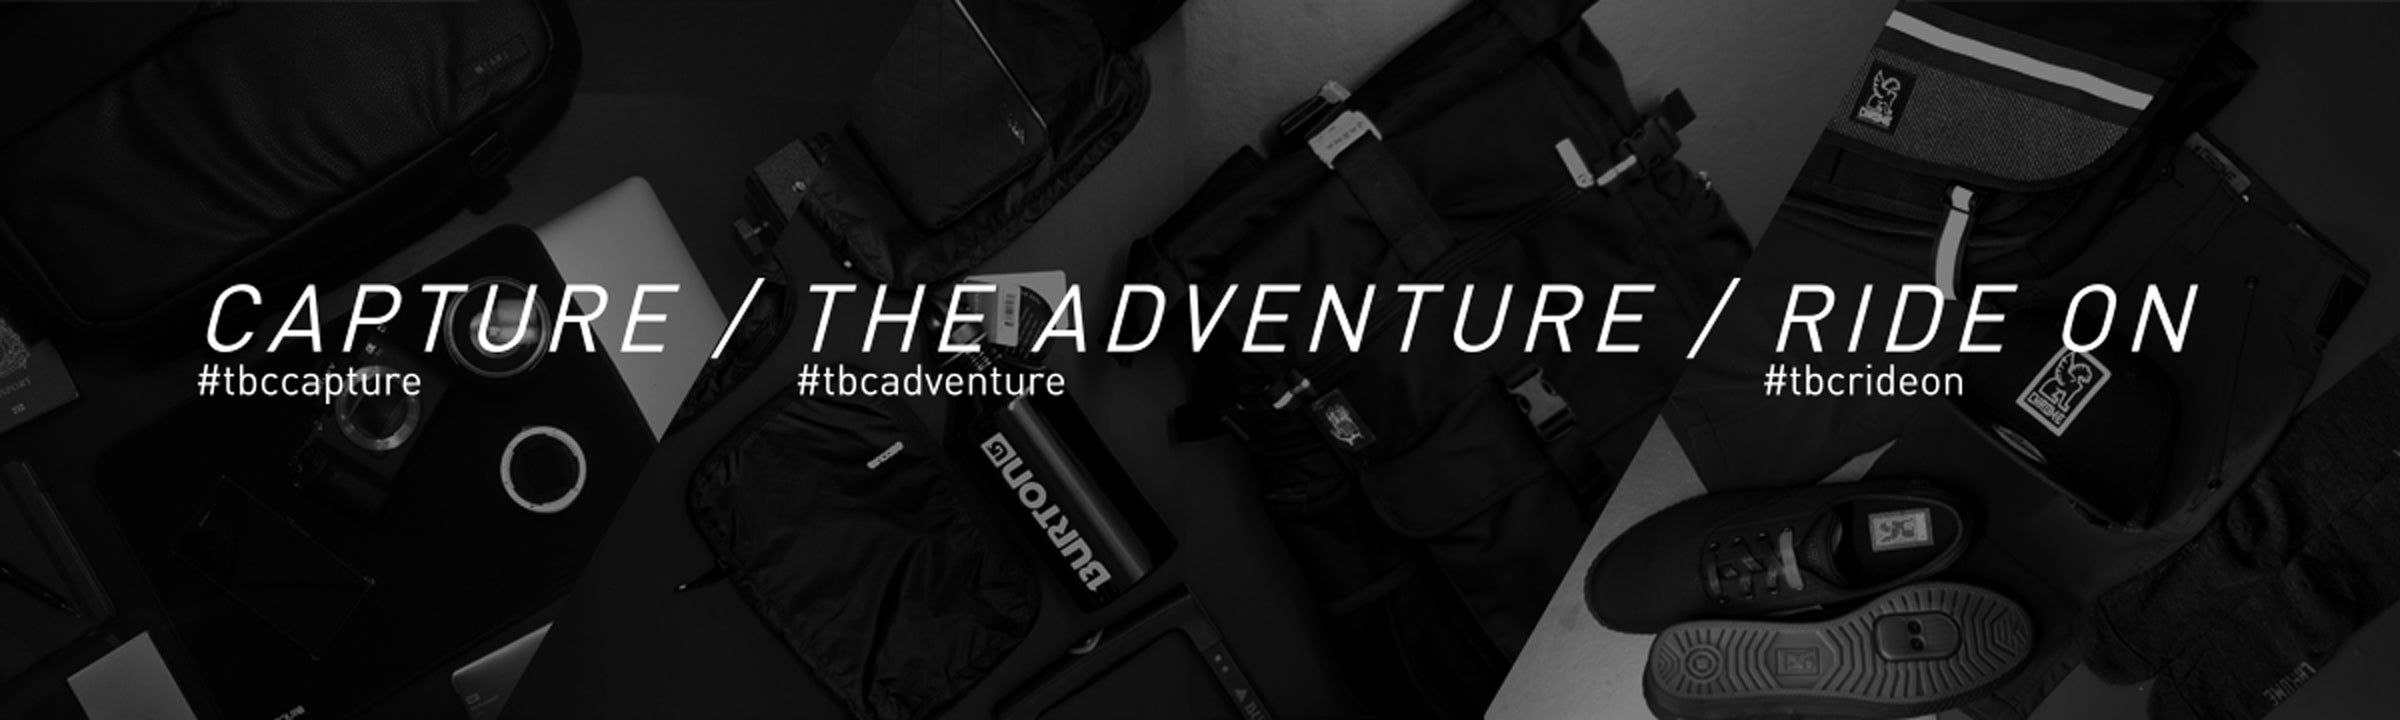 Capture / The Adventure / Ride On